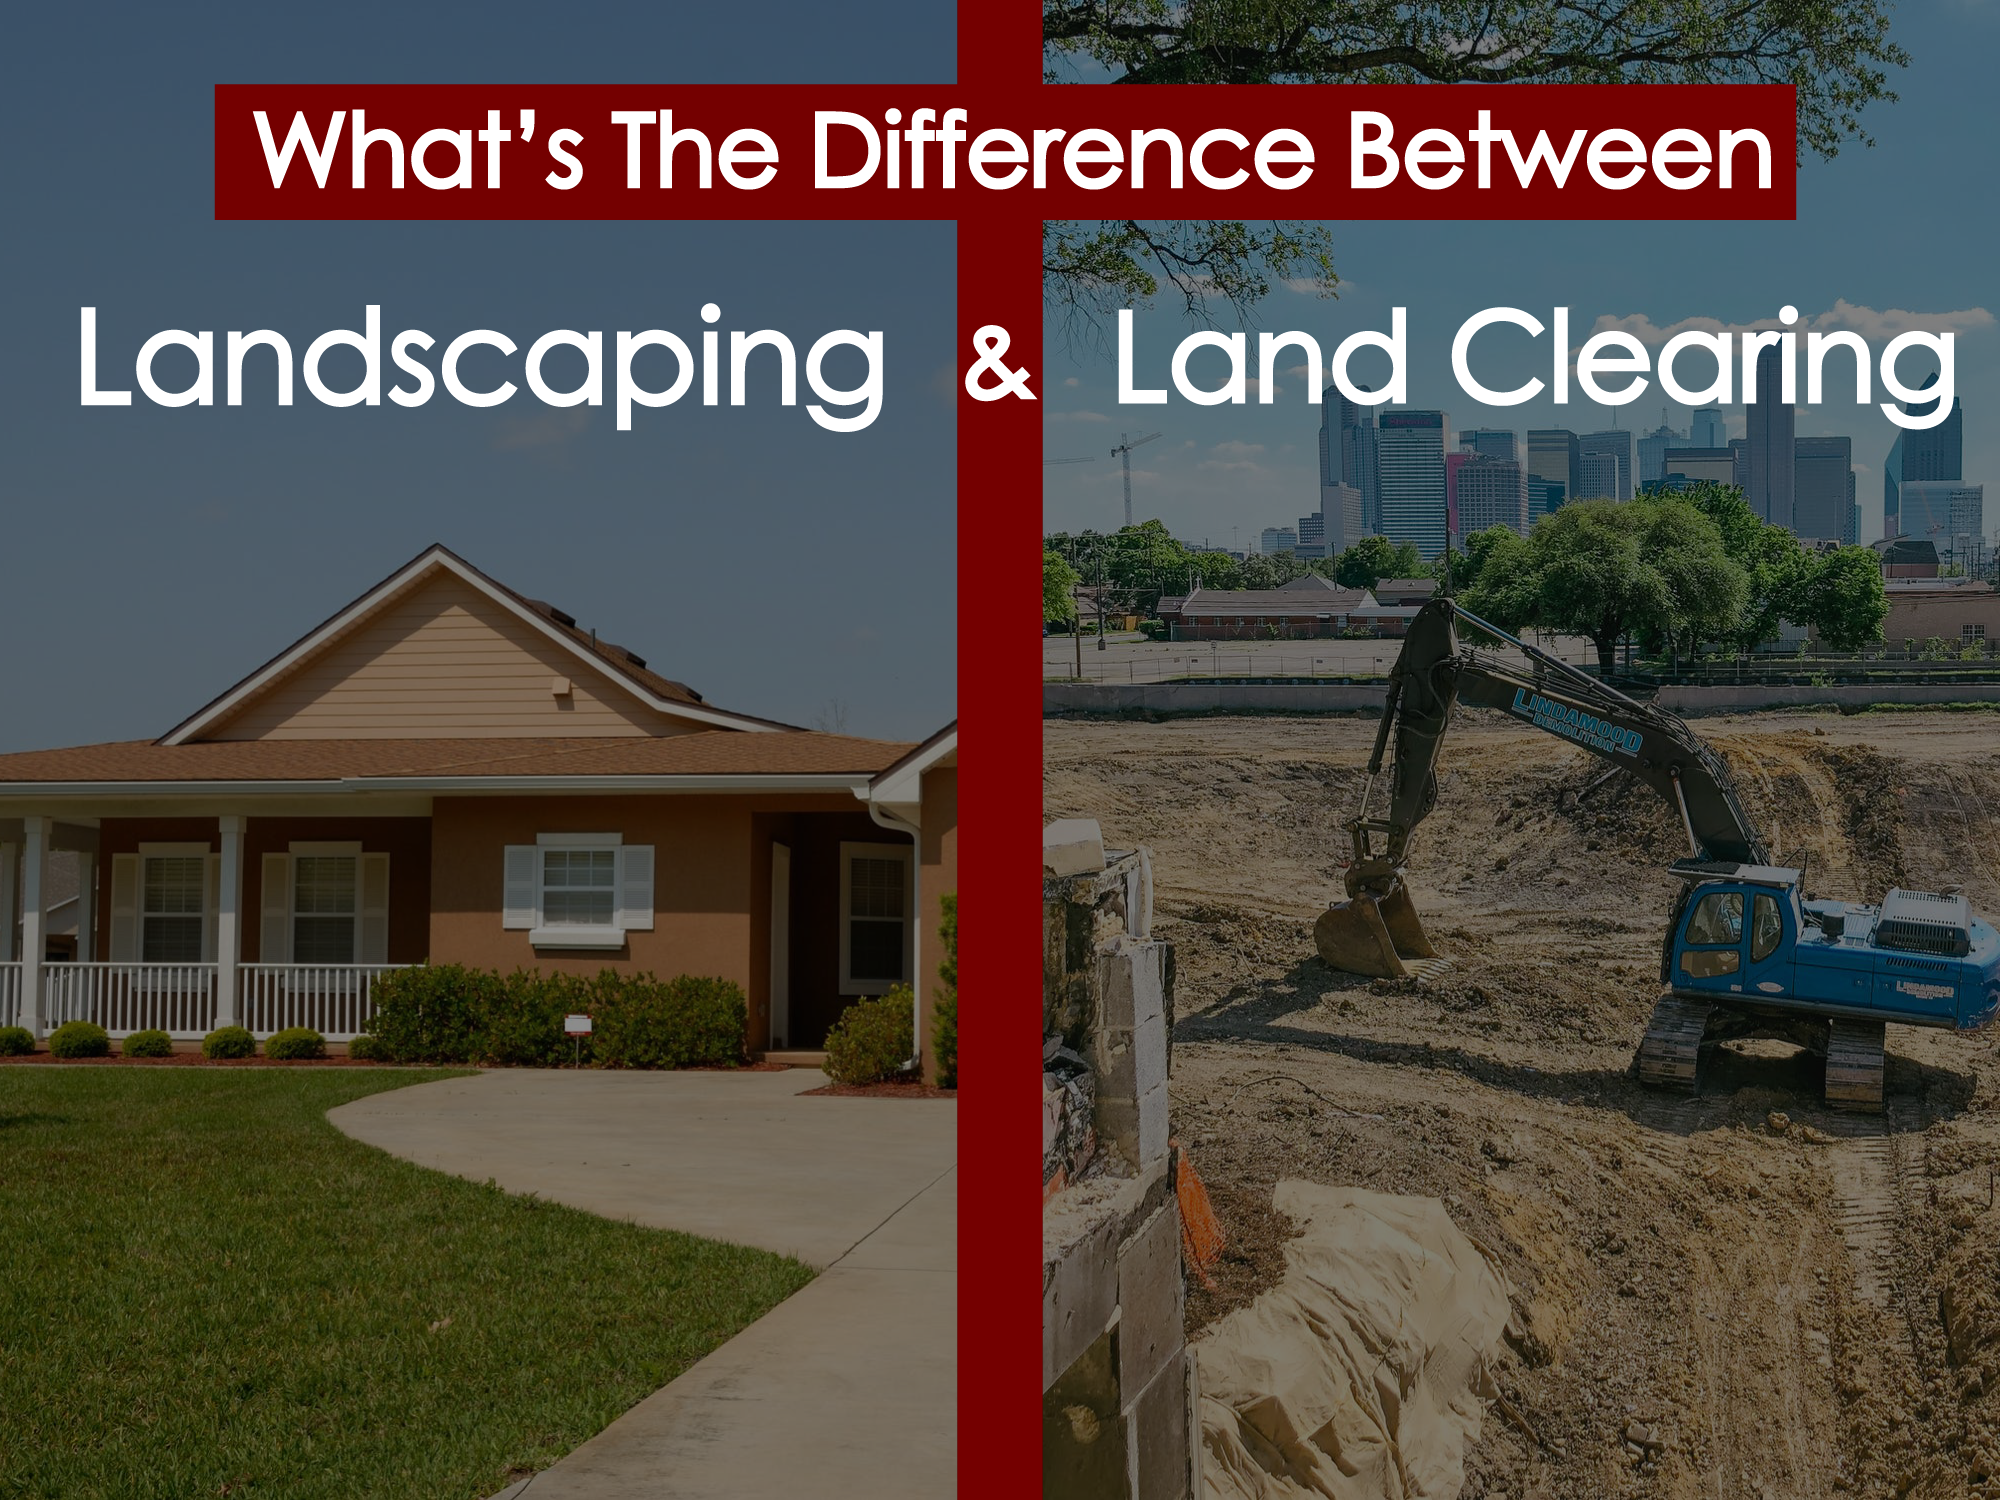 landscaping and land clearing company